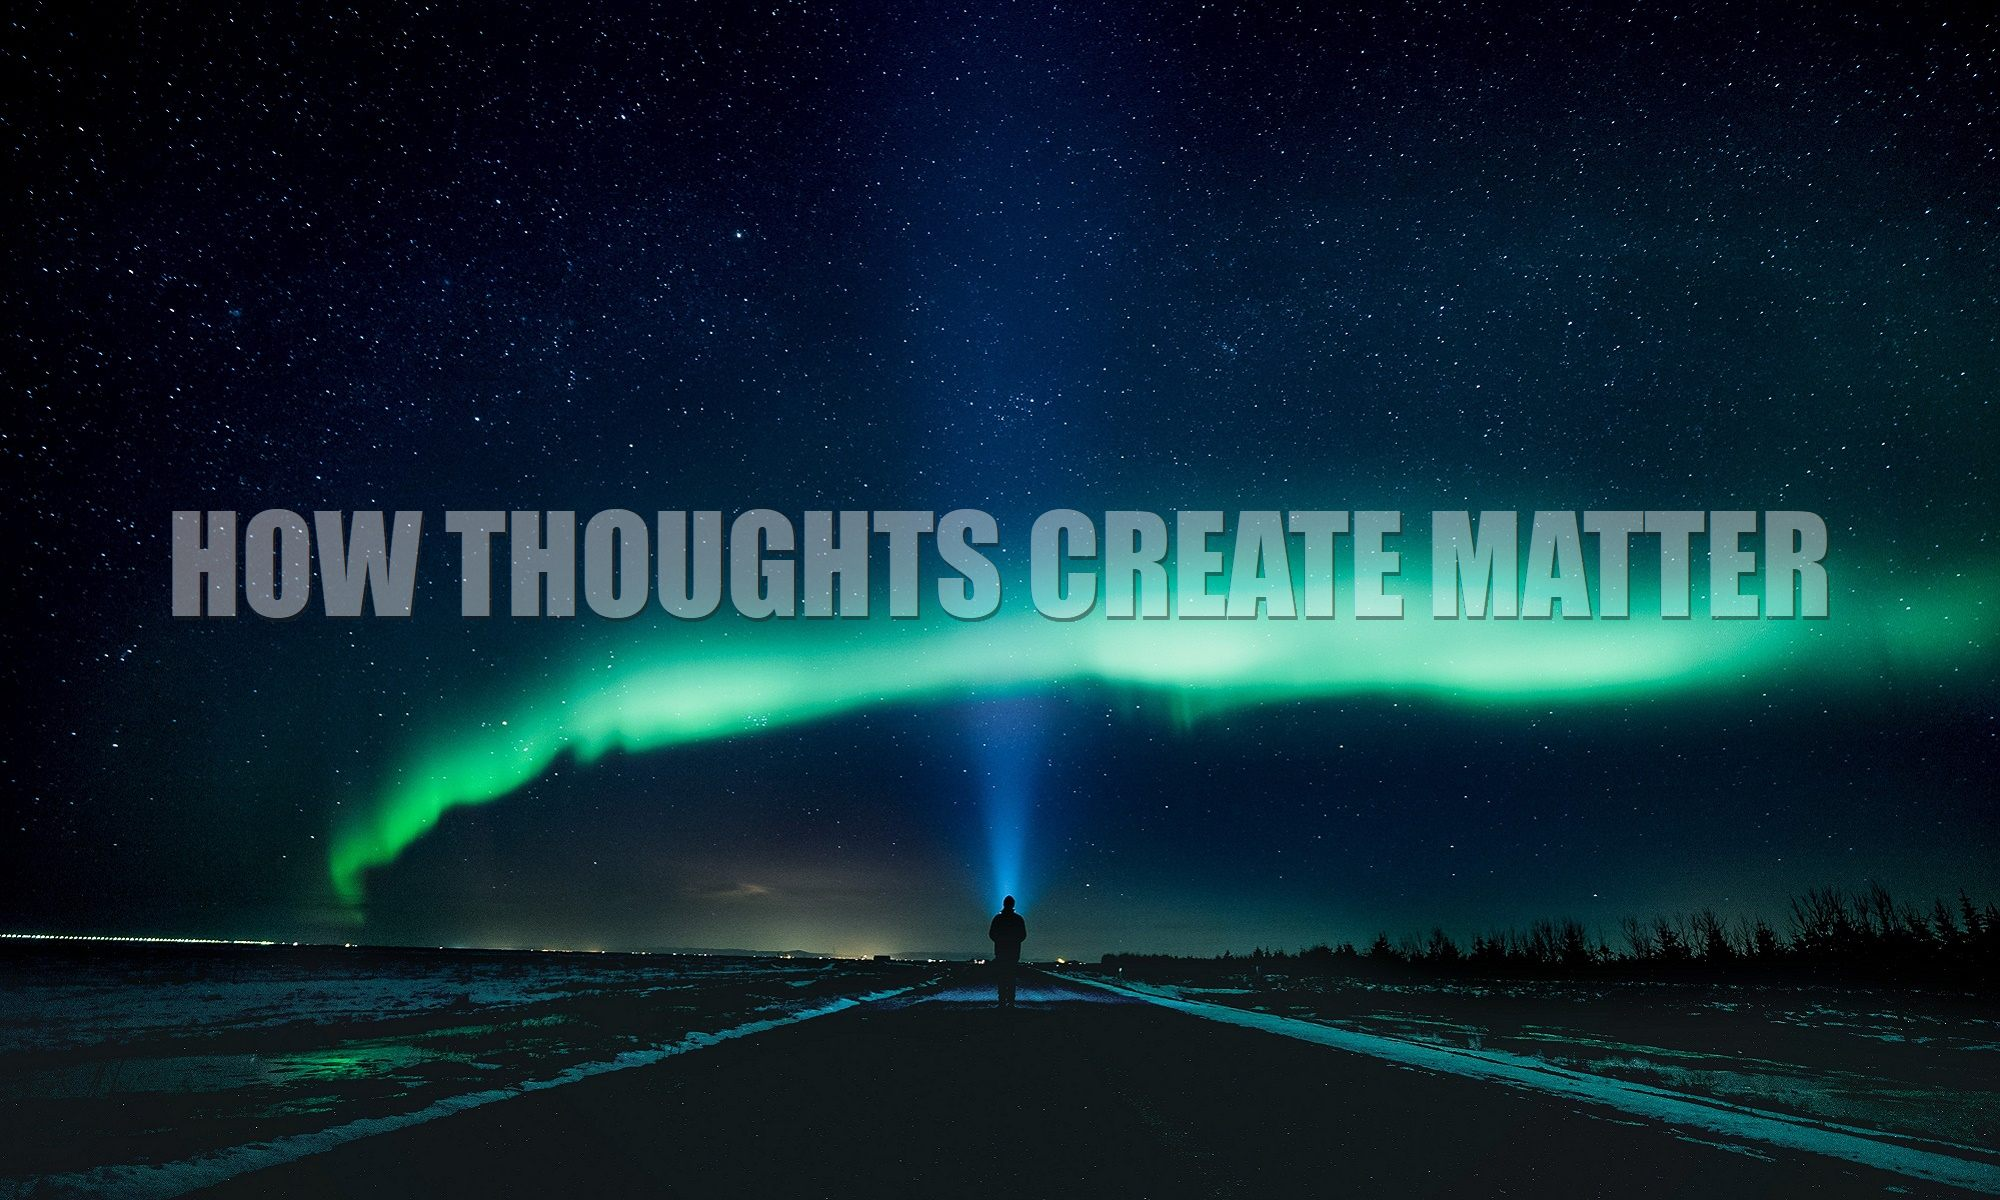 How-thoughts-create-matter-article-feature-1a